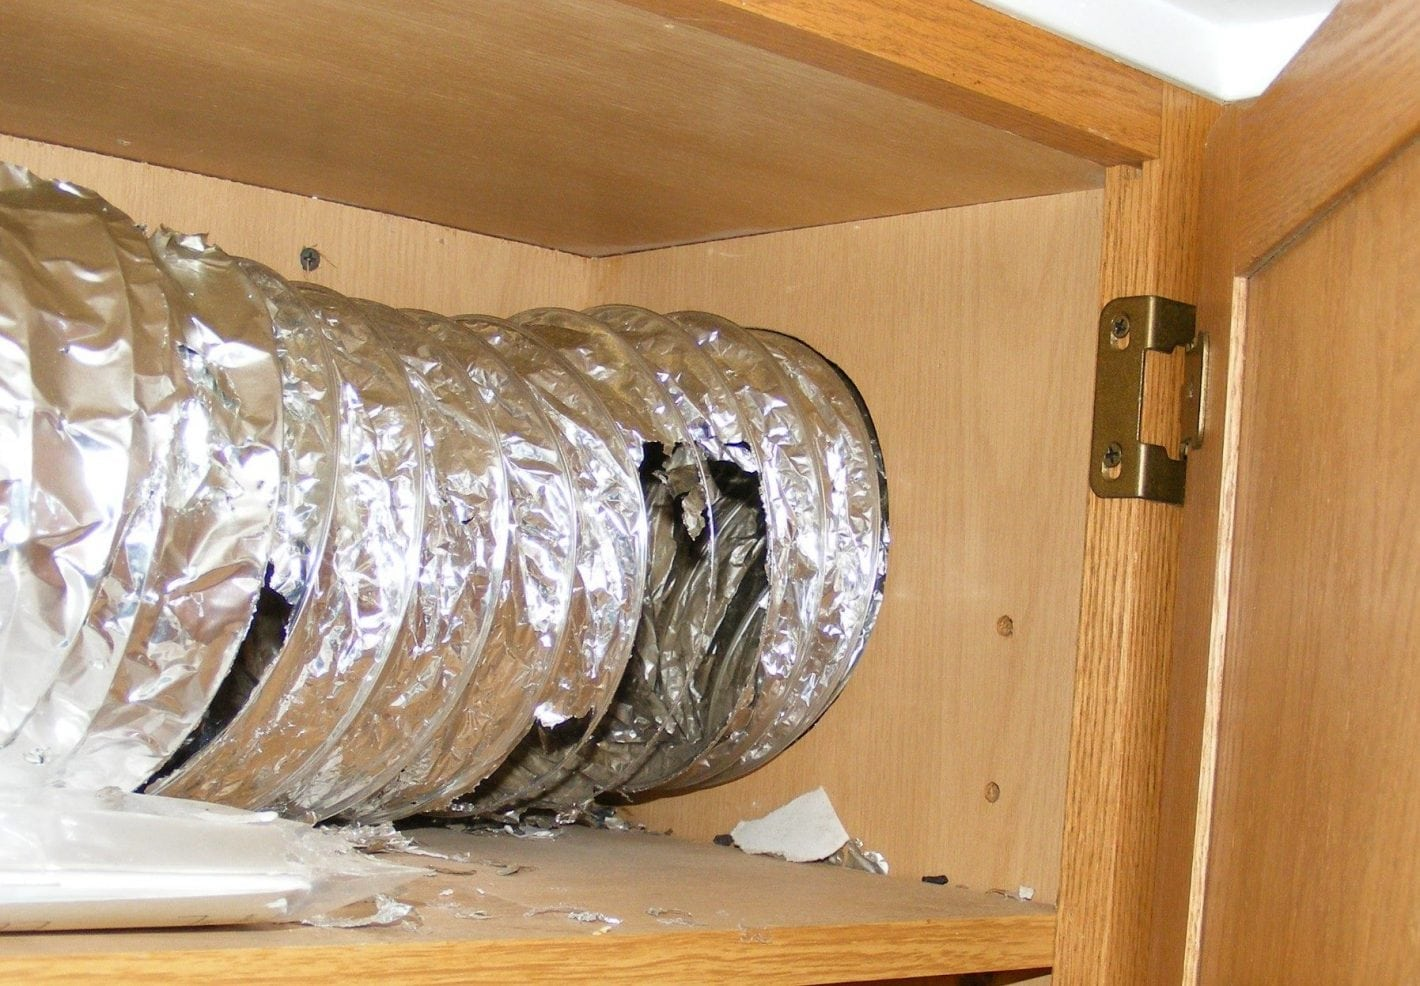 Rodent damaged ductwork in a kitchen cabinet